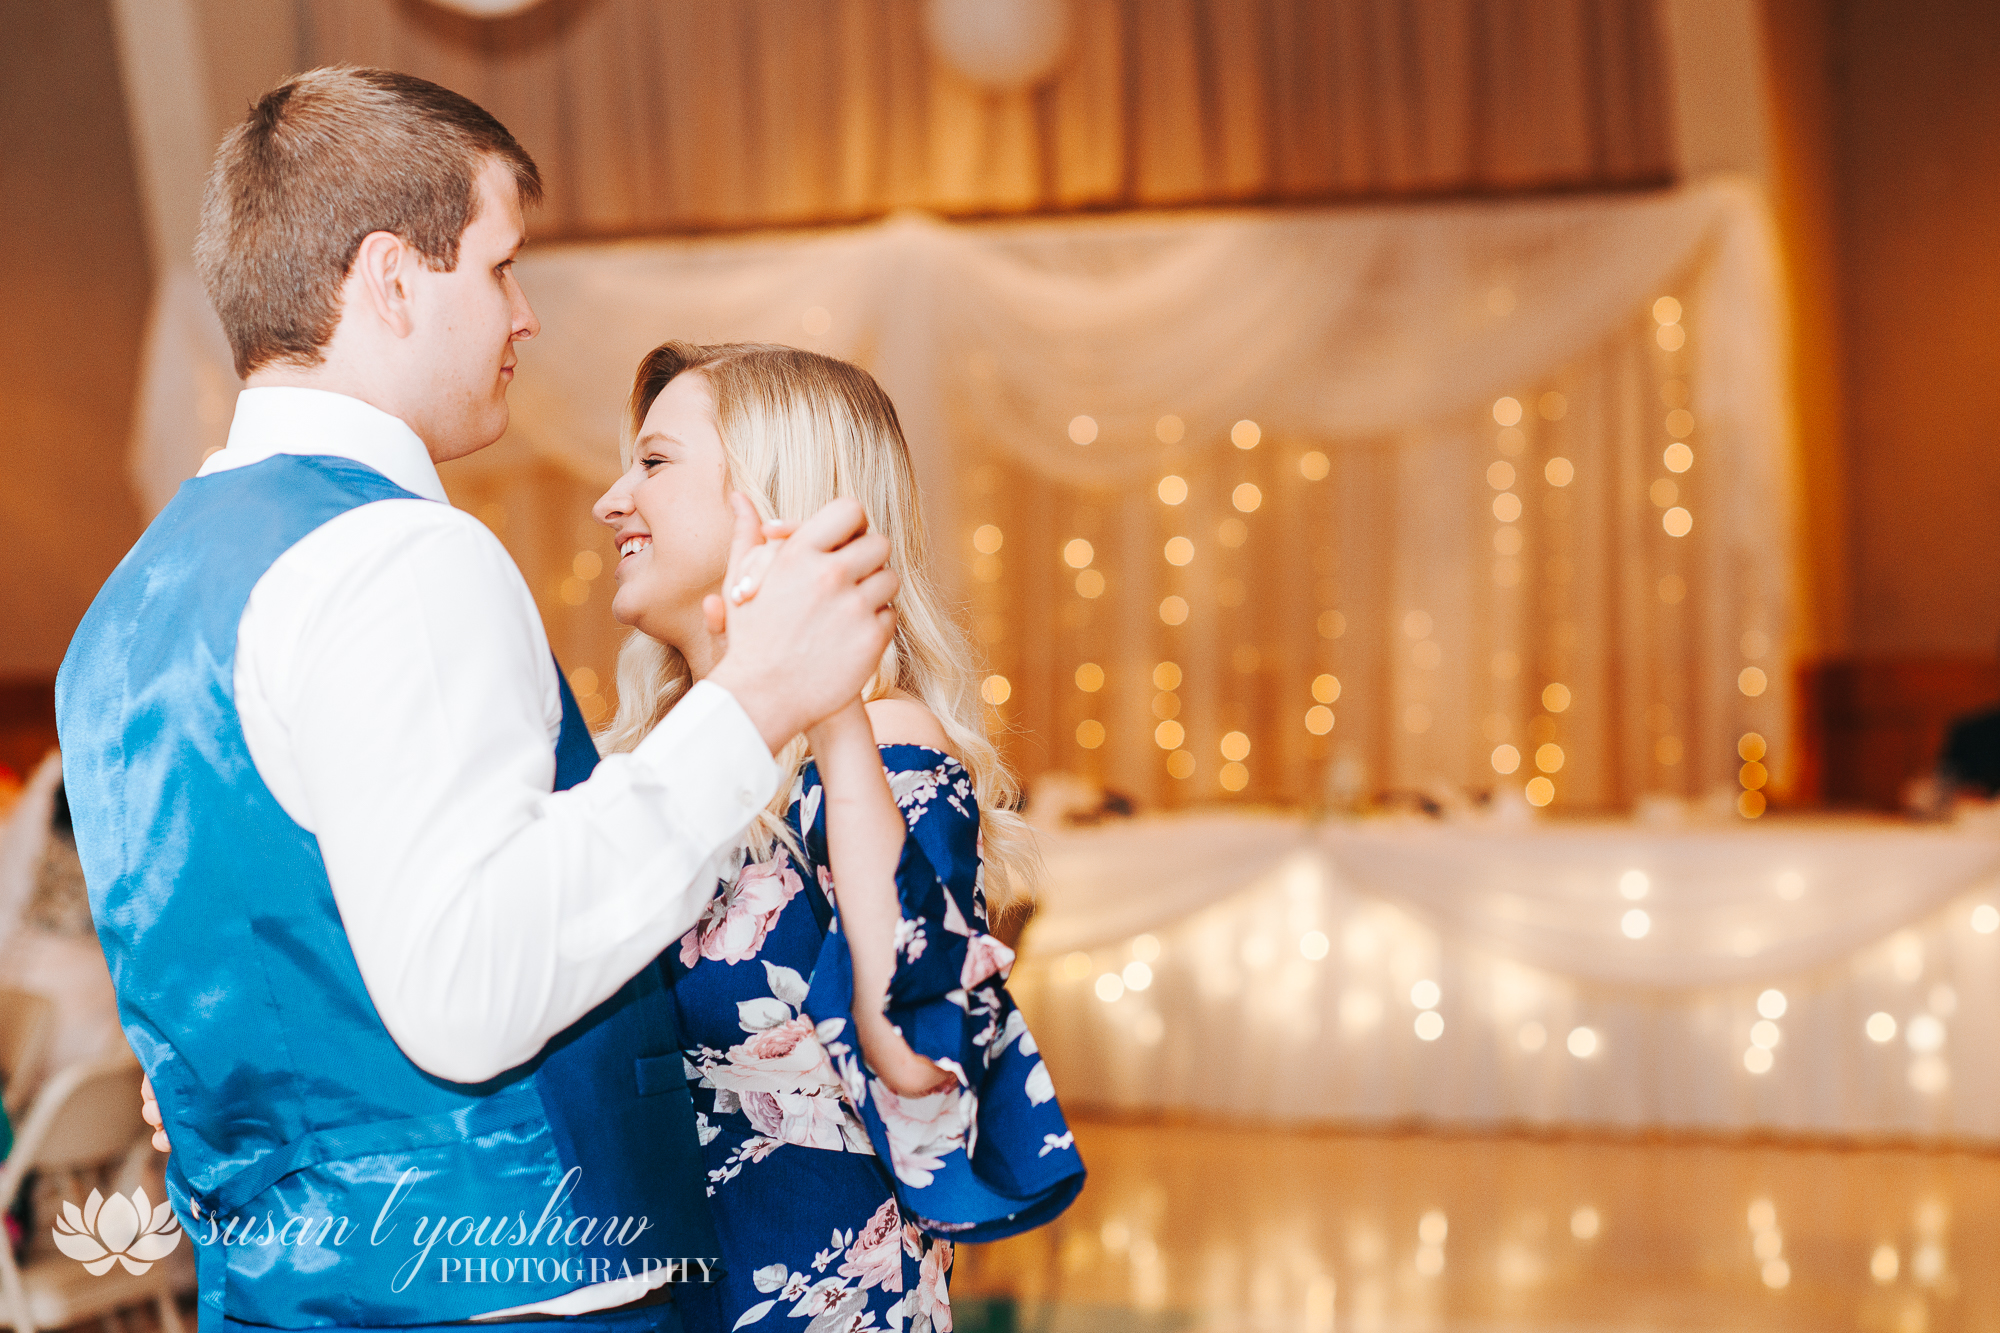 BLOG Kylie and corey Bennet 10-13-2018 SLY Photography LLC-153.jpg